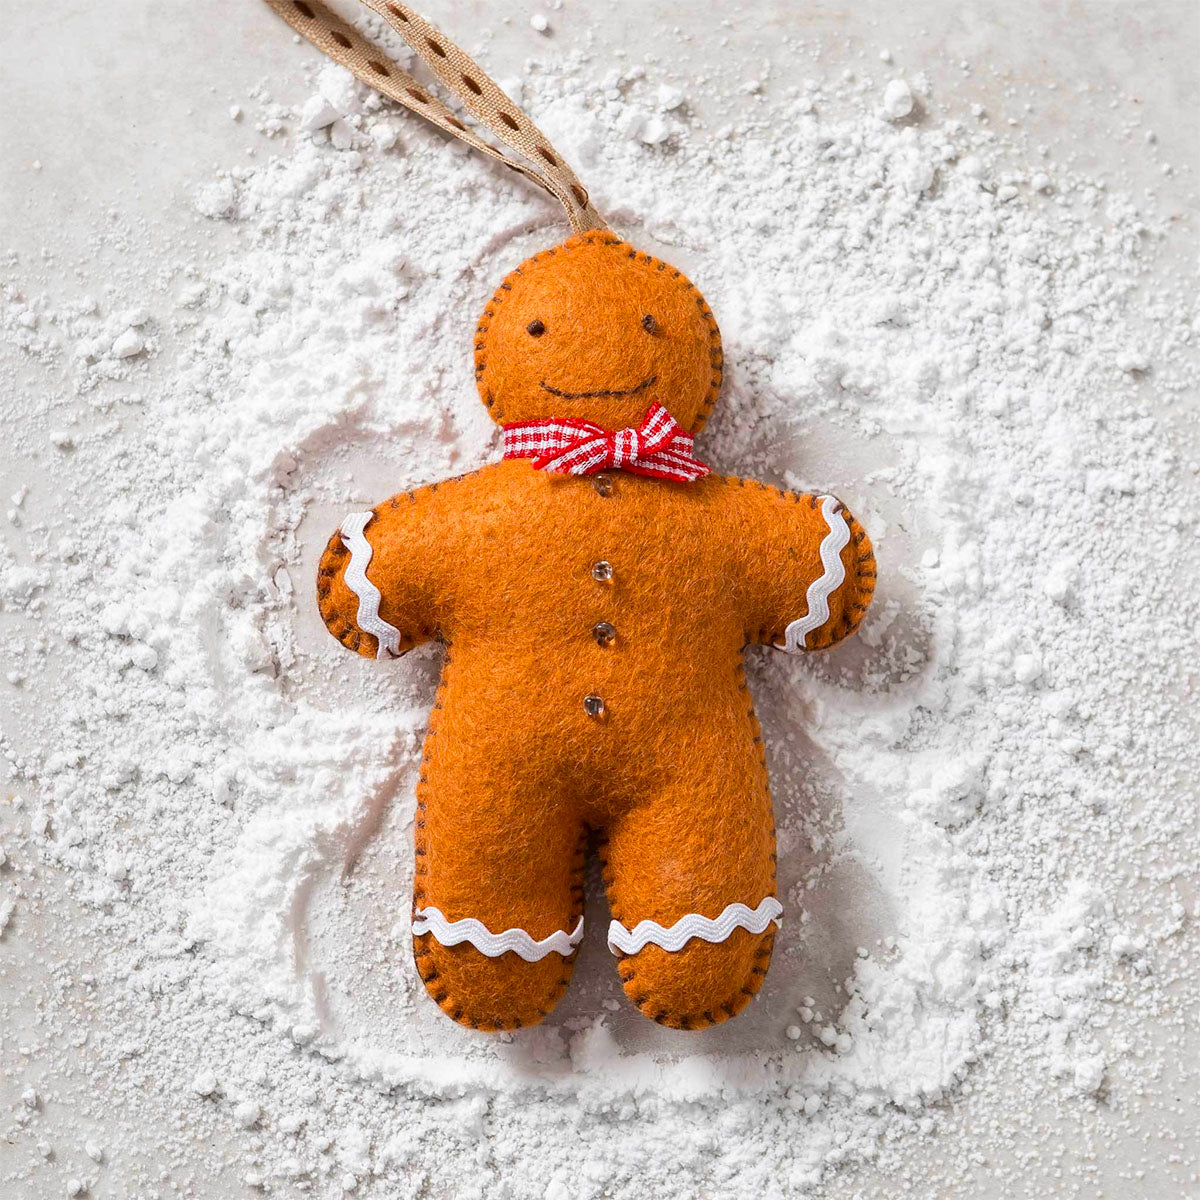 Felt Craft Mini Kit - Gingerbread Man